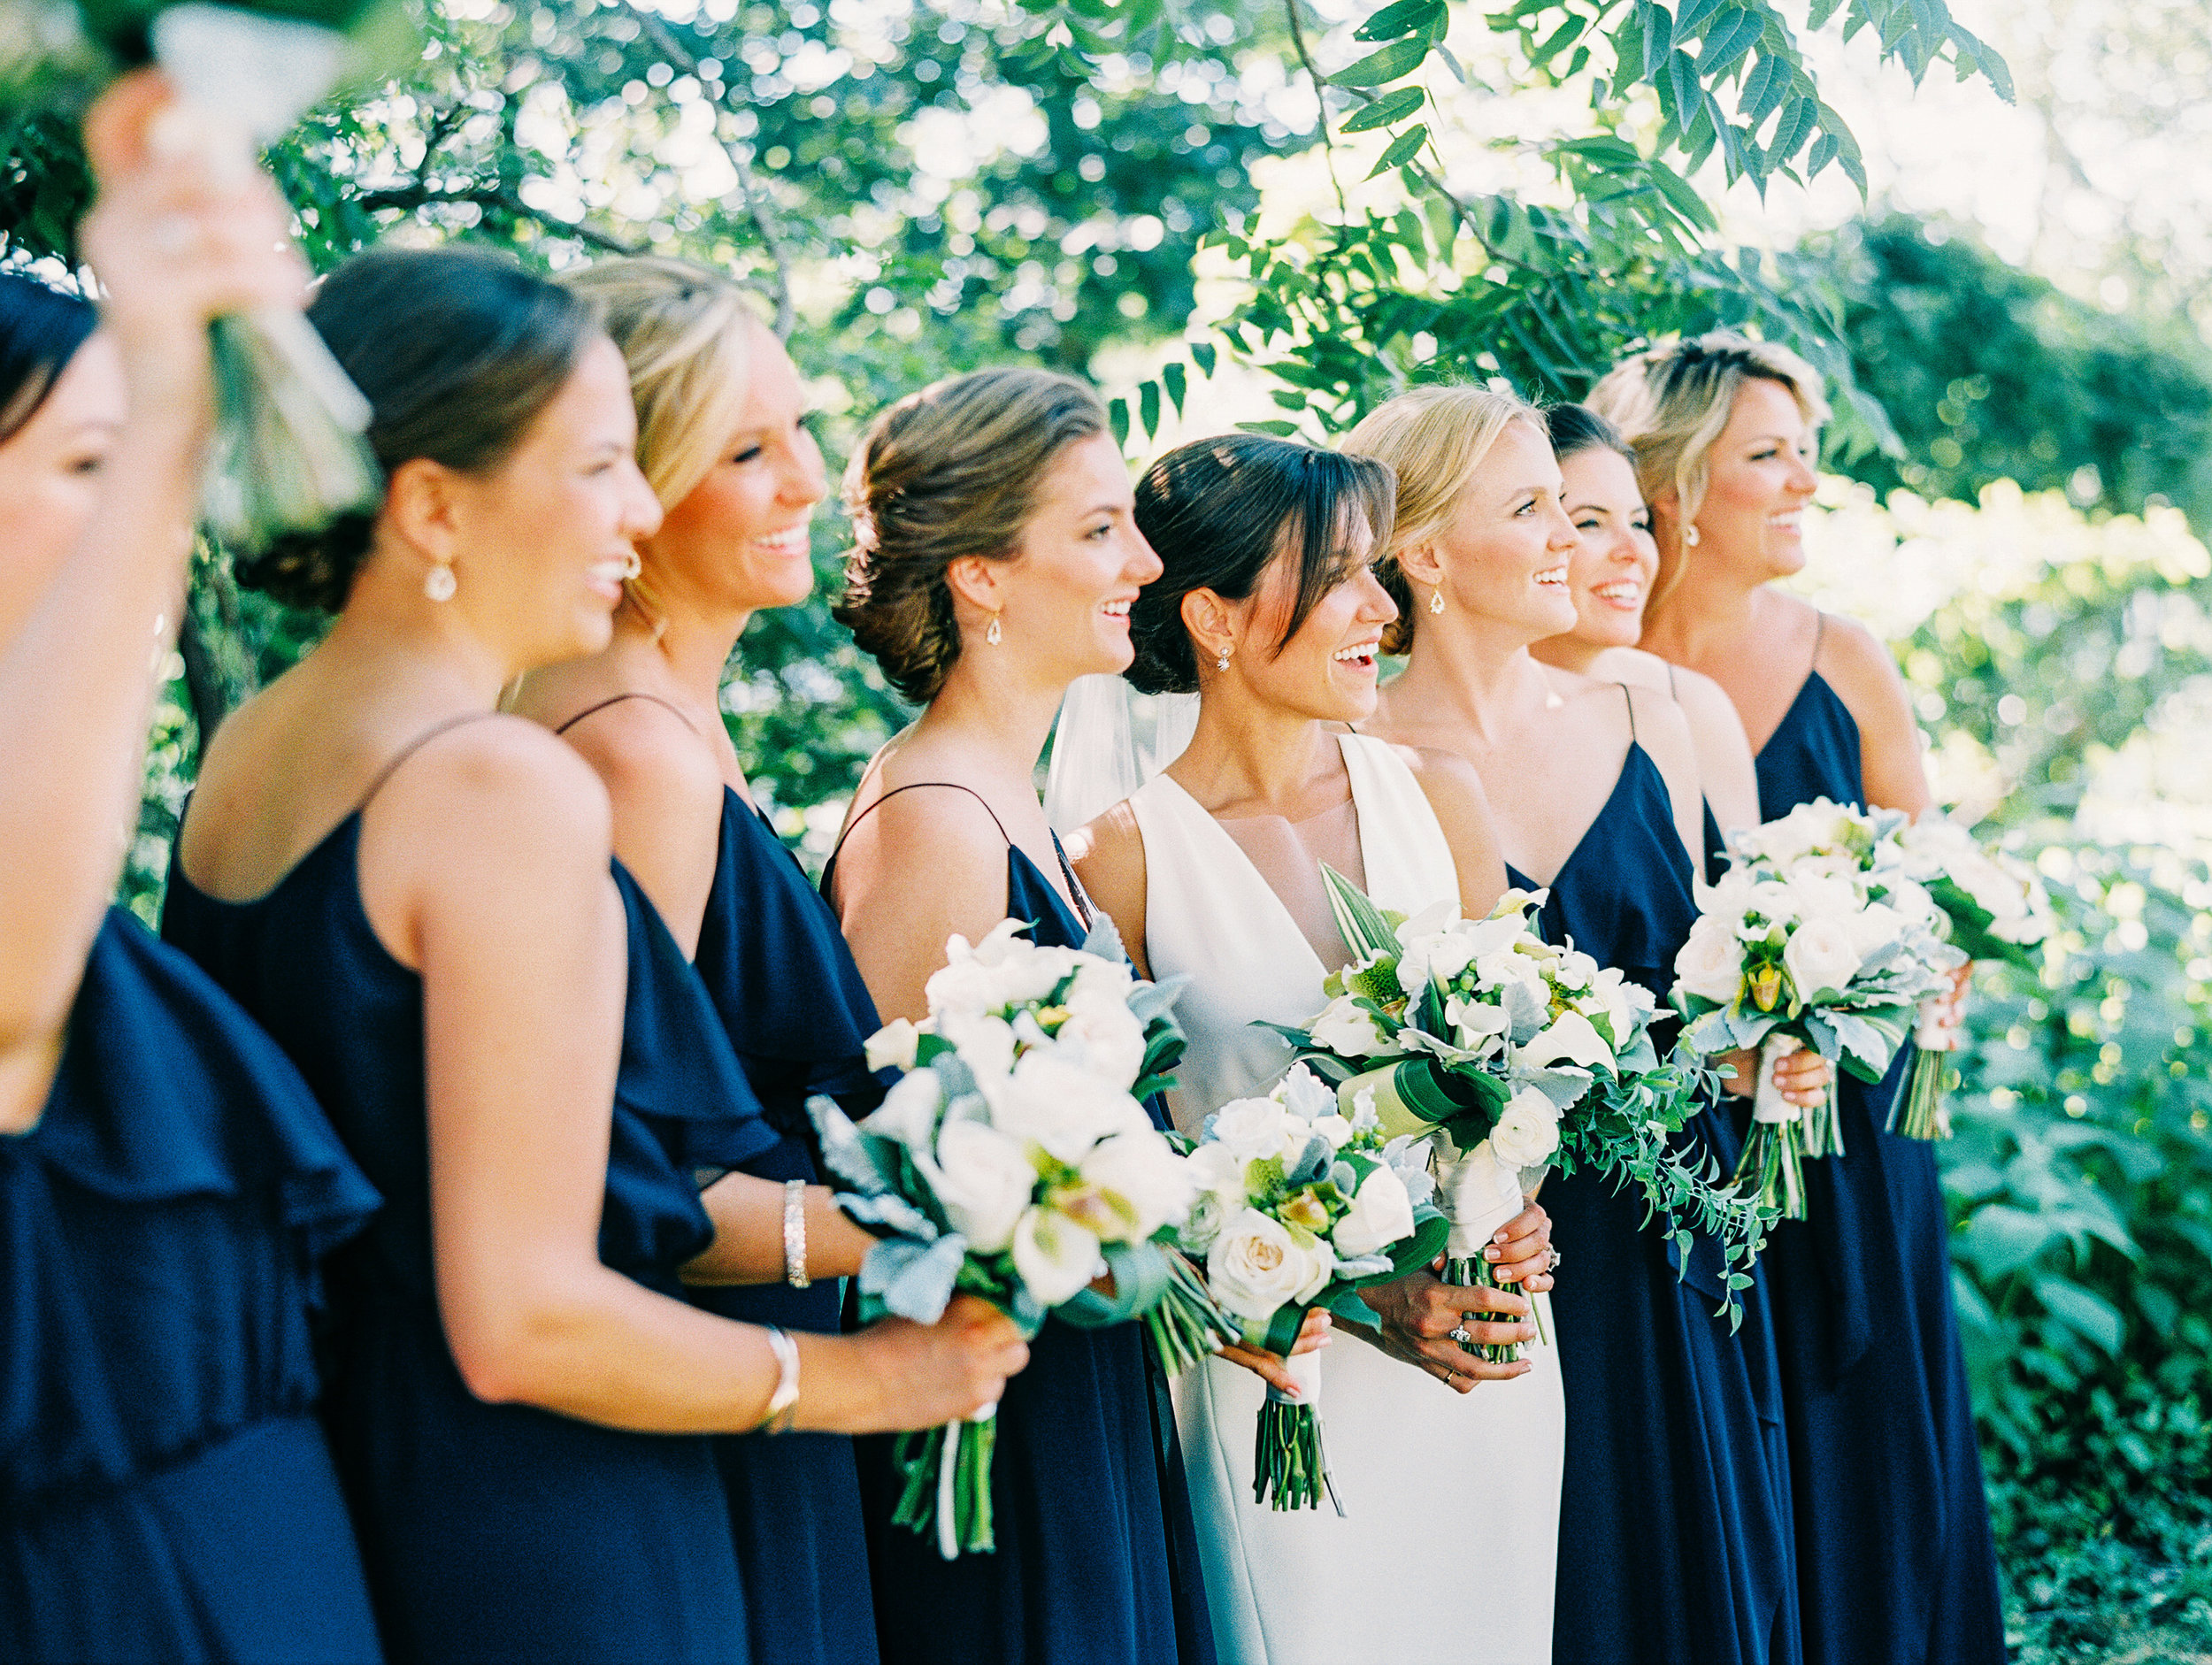 katie stoops photography-solomans island wedding19.jpg